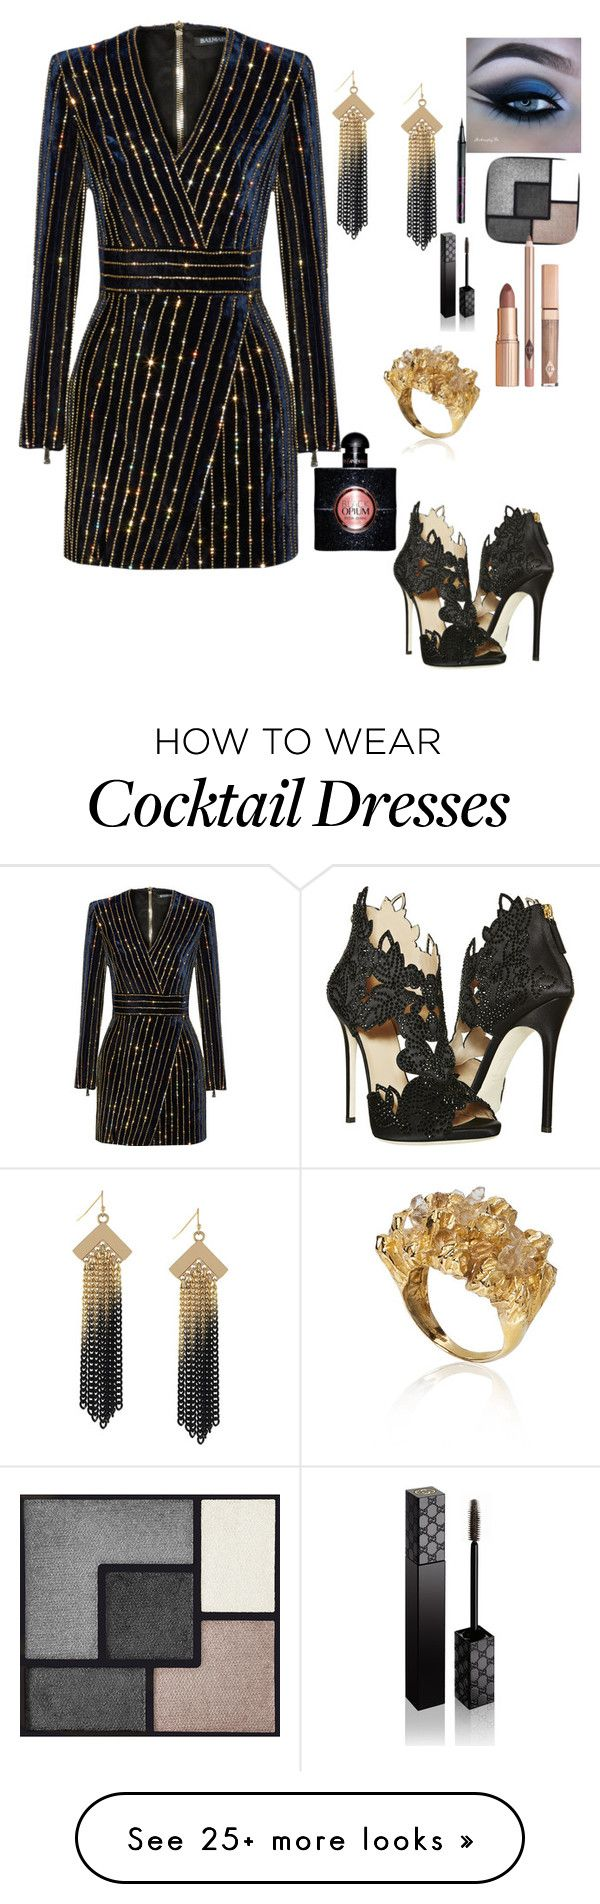 """""""Untitled #1468"""" by greenrain on Polyvore featuring Balmain, La Perla, Nicole By Nicole Miller, Niza Huang, Barry M, Yves Saint Laurent and Gucci"""